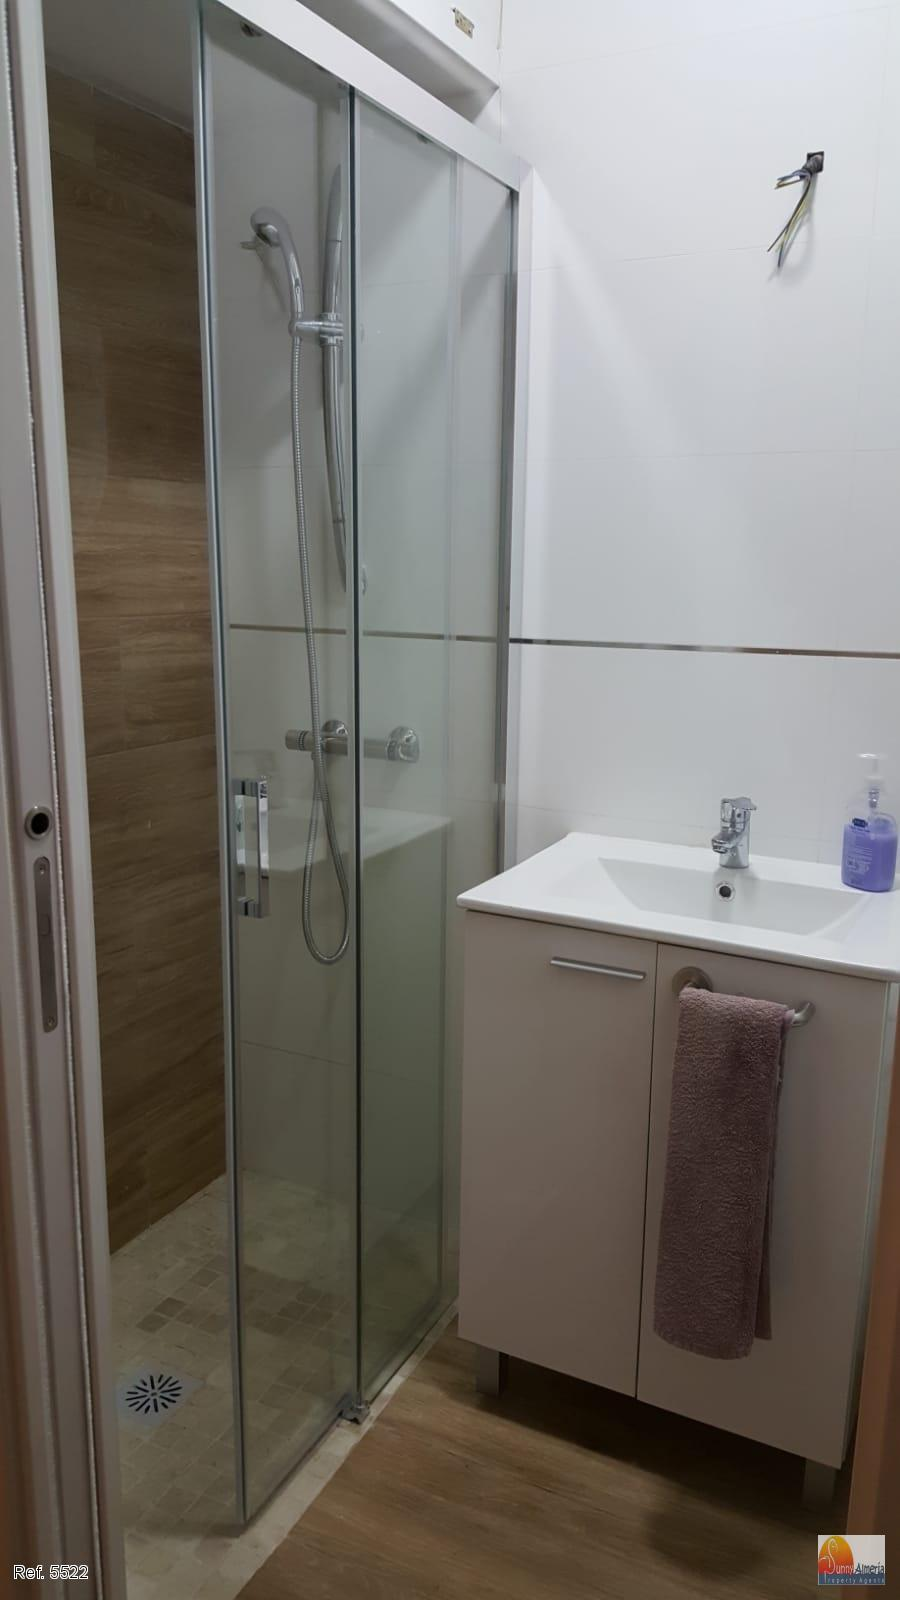 Studio Flat for rent in Avenida las Gaviotas   19 (Roquetas de Mar), 450 €/month